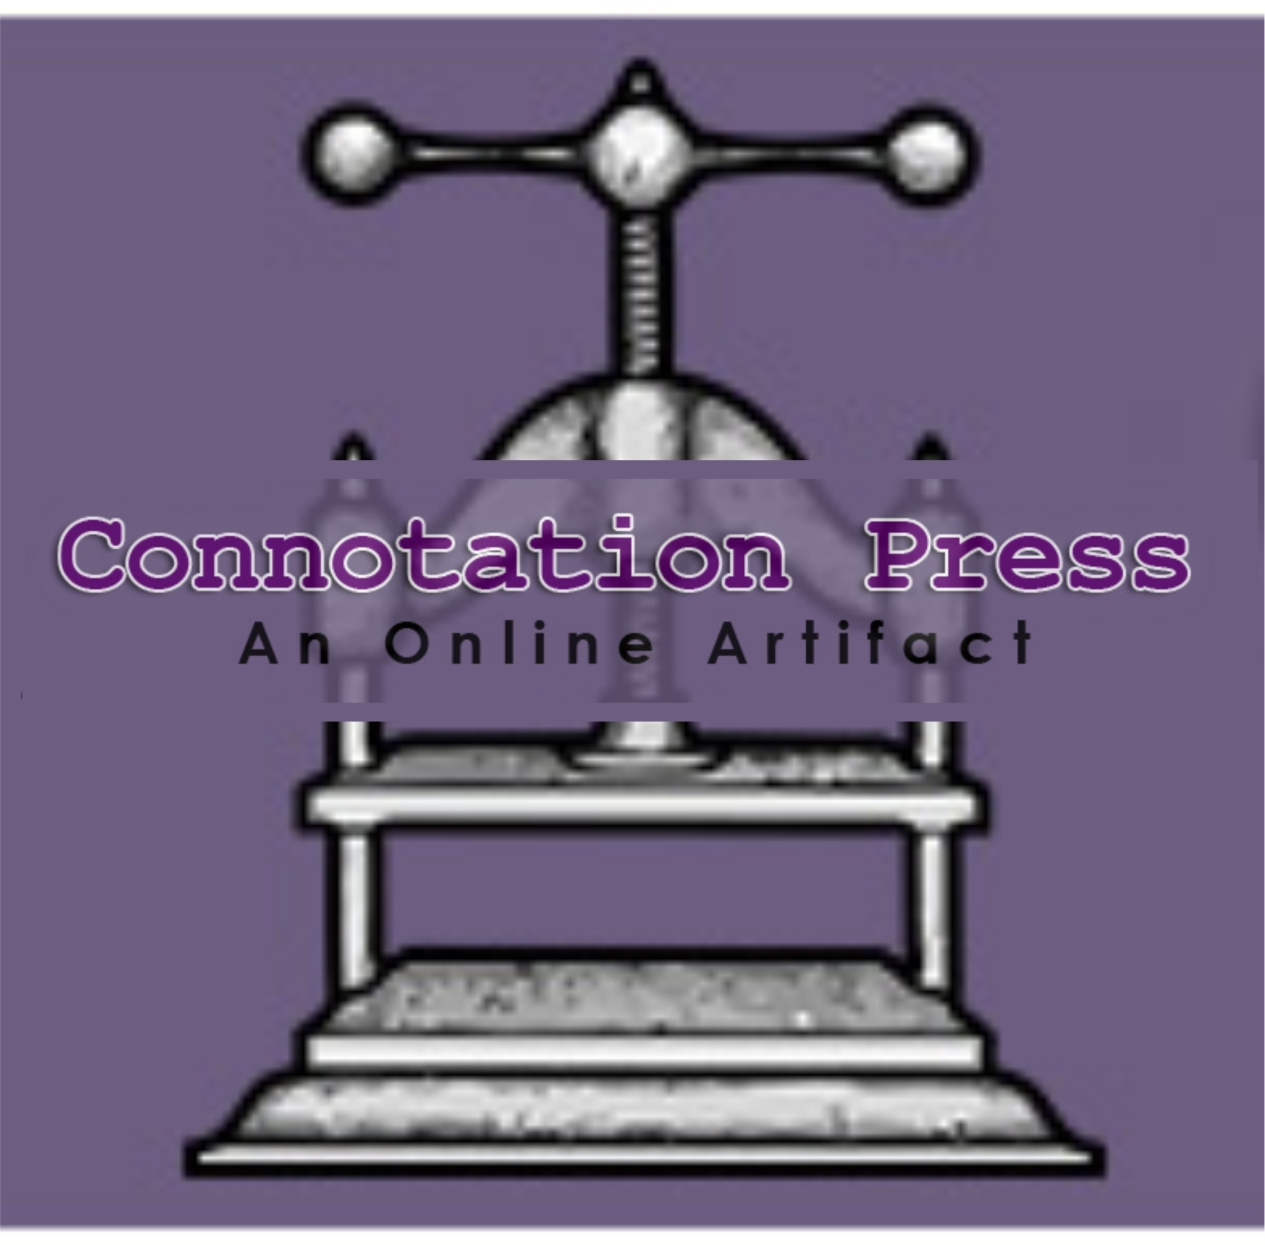 CON PRESS   Compliments me by noting my poems from April 2014 as some of the standout pieces of the year! https://poetryofdanielle.com/2014/08/04/3536/